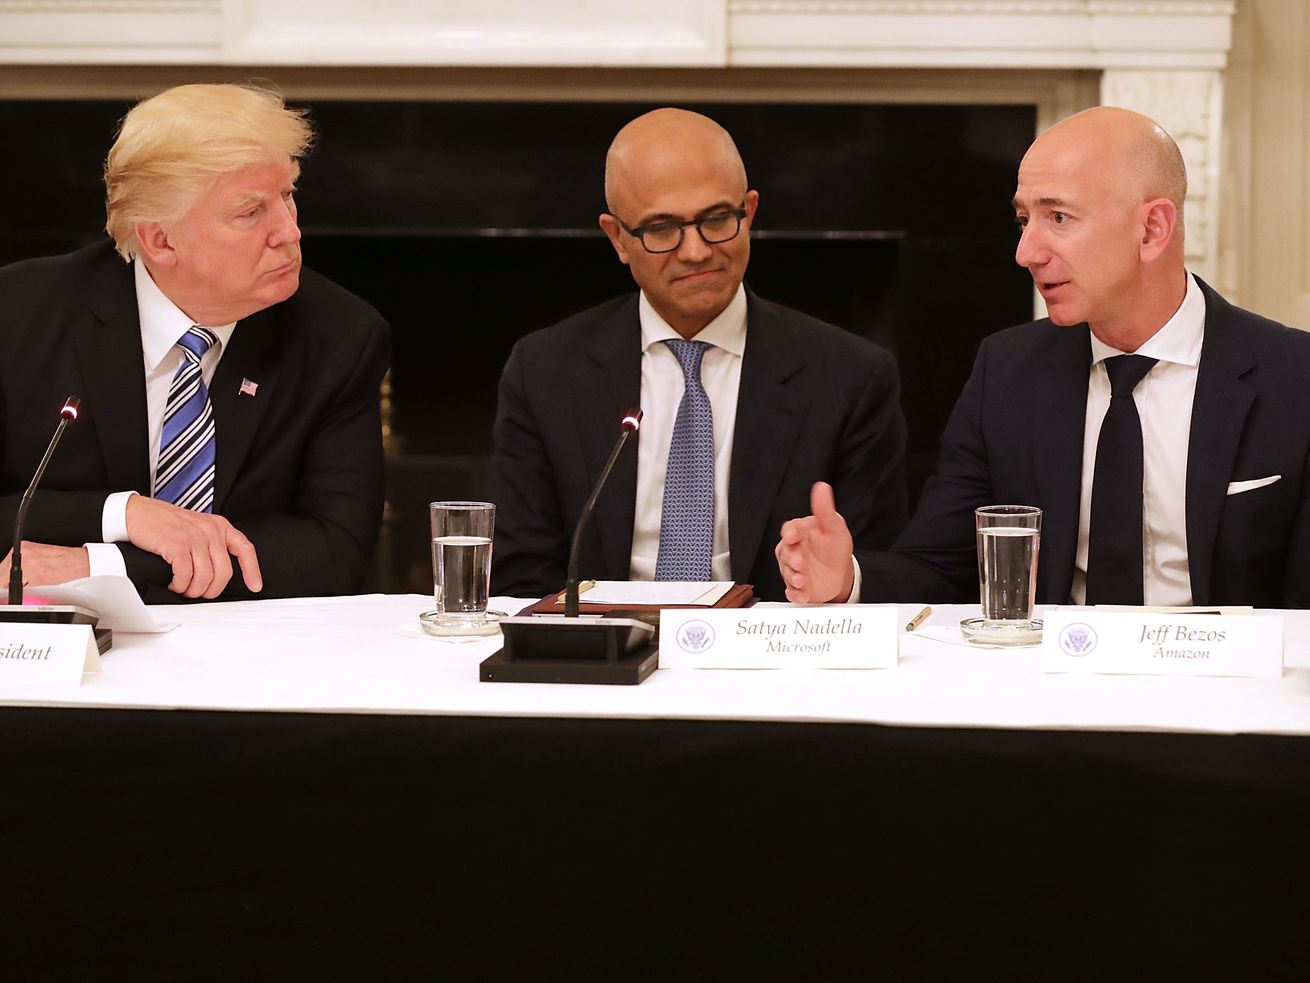 It looks like President Trump's attacks on Amazon go beyond tweets: He reportedly lobbied the USPS to double delivery rates